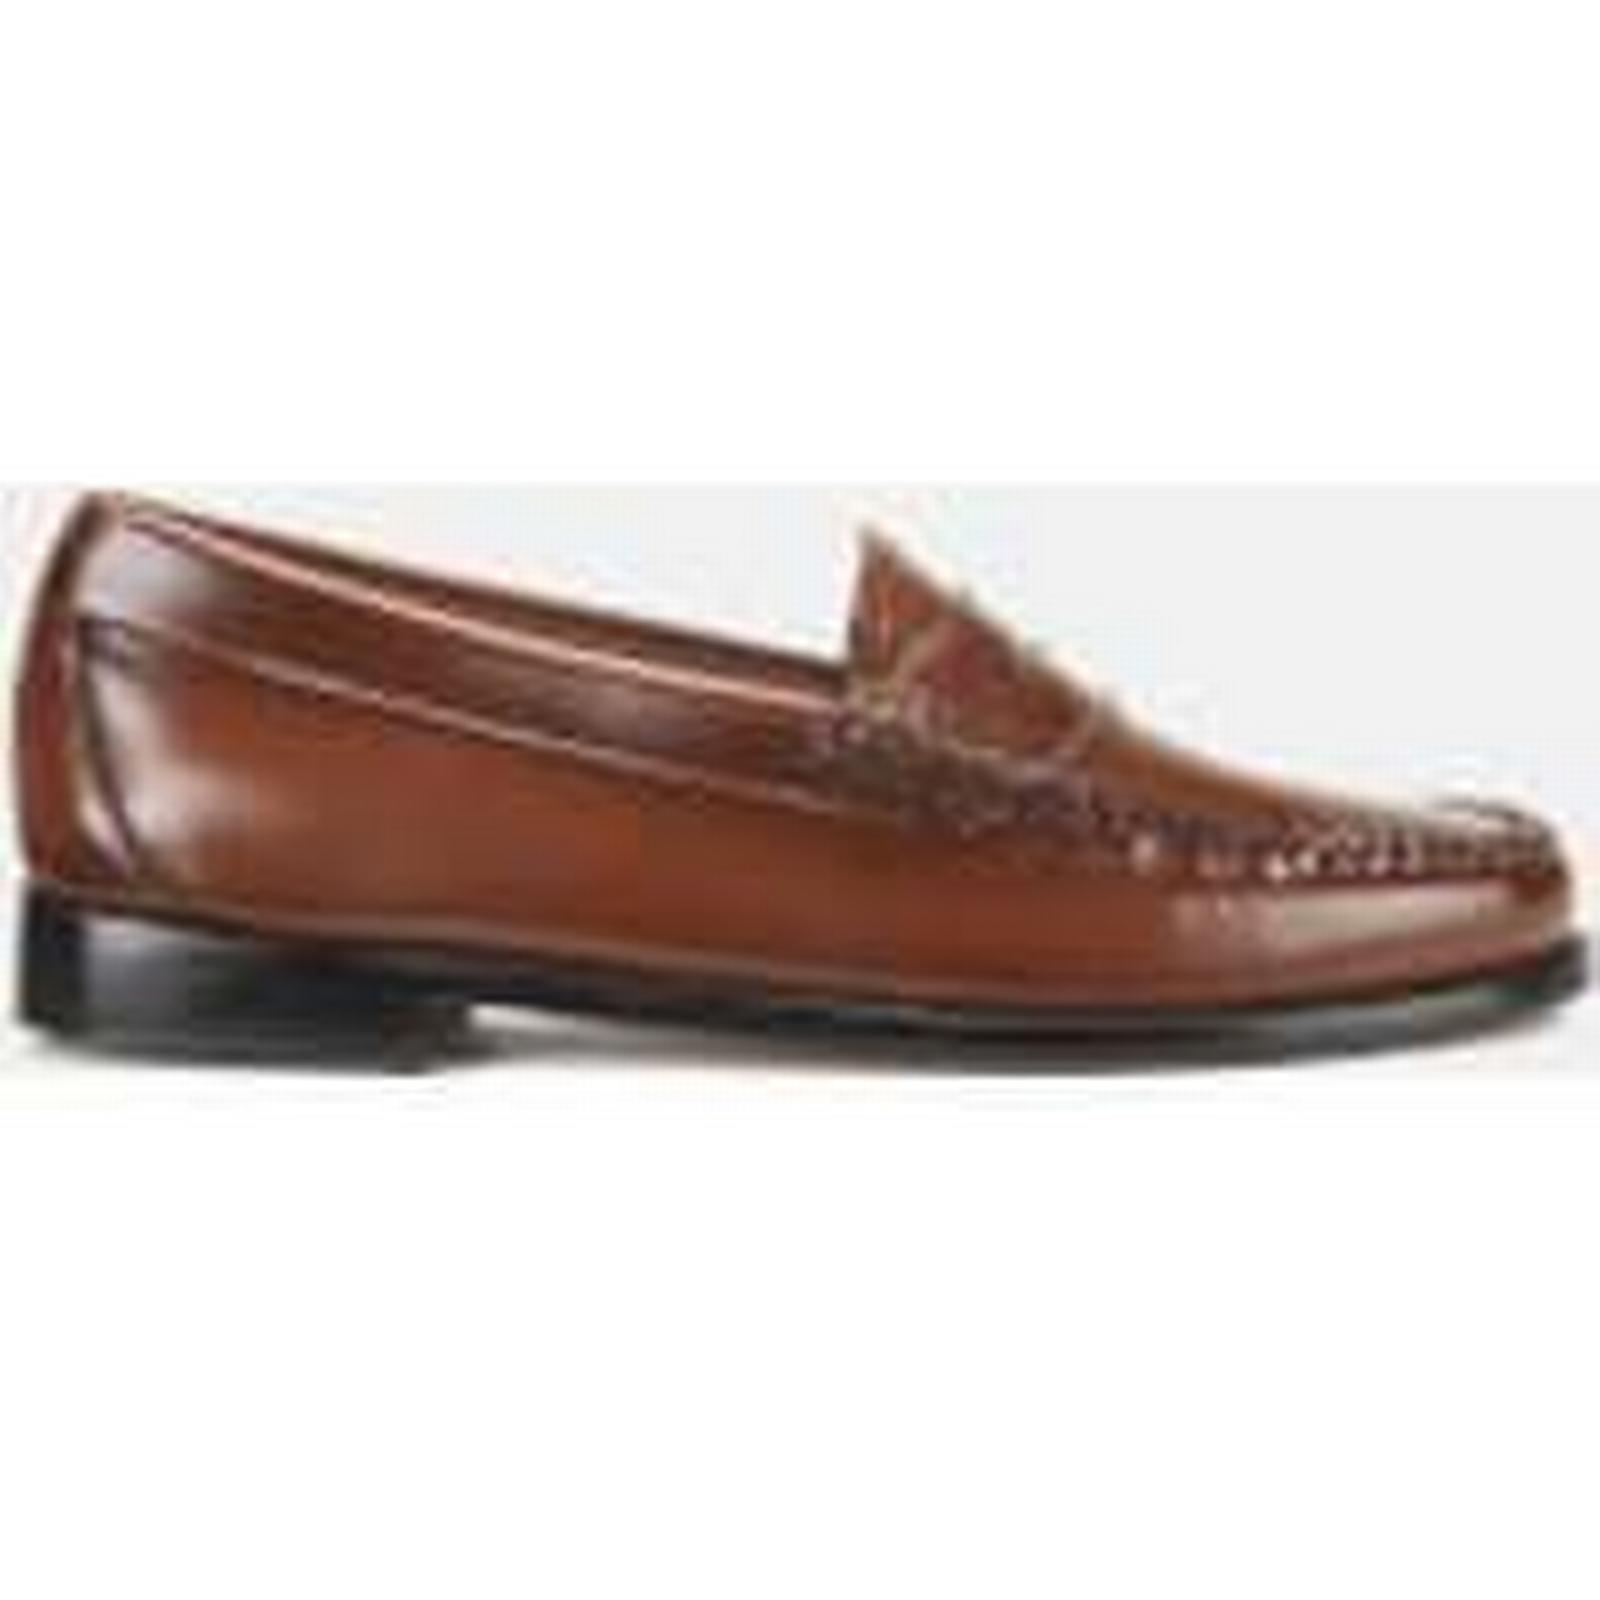 Bass Weejuns - Women's Penny Leather Loafers - Weejuns Mid Brown - UK 5 - Brown 90c924